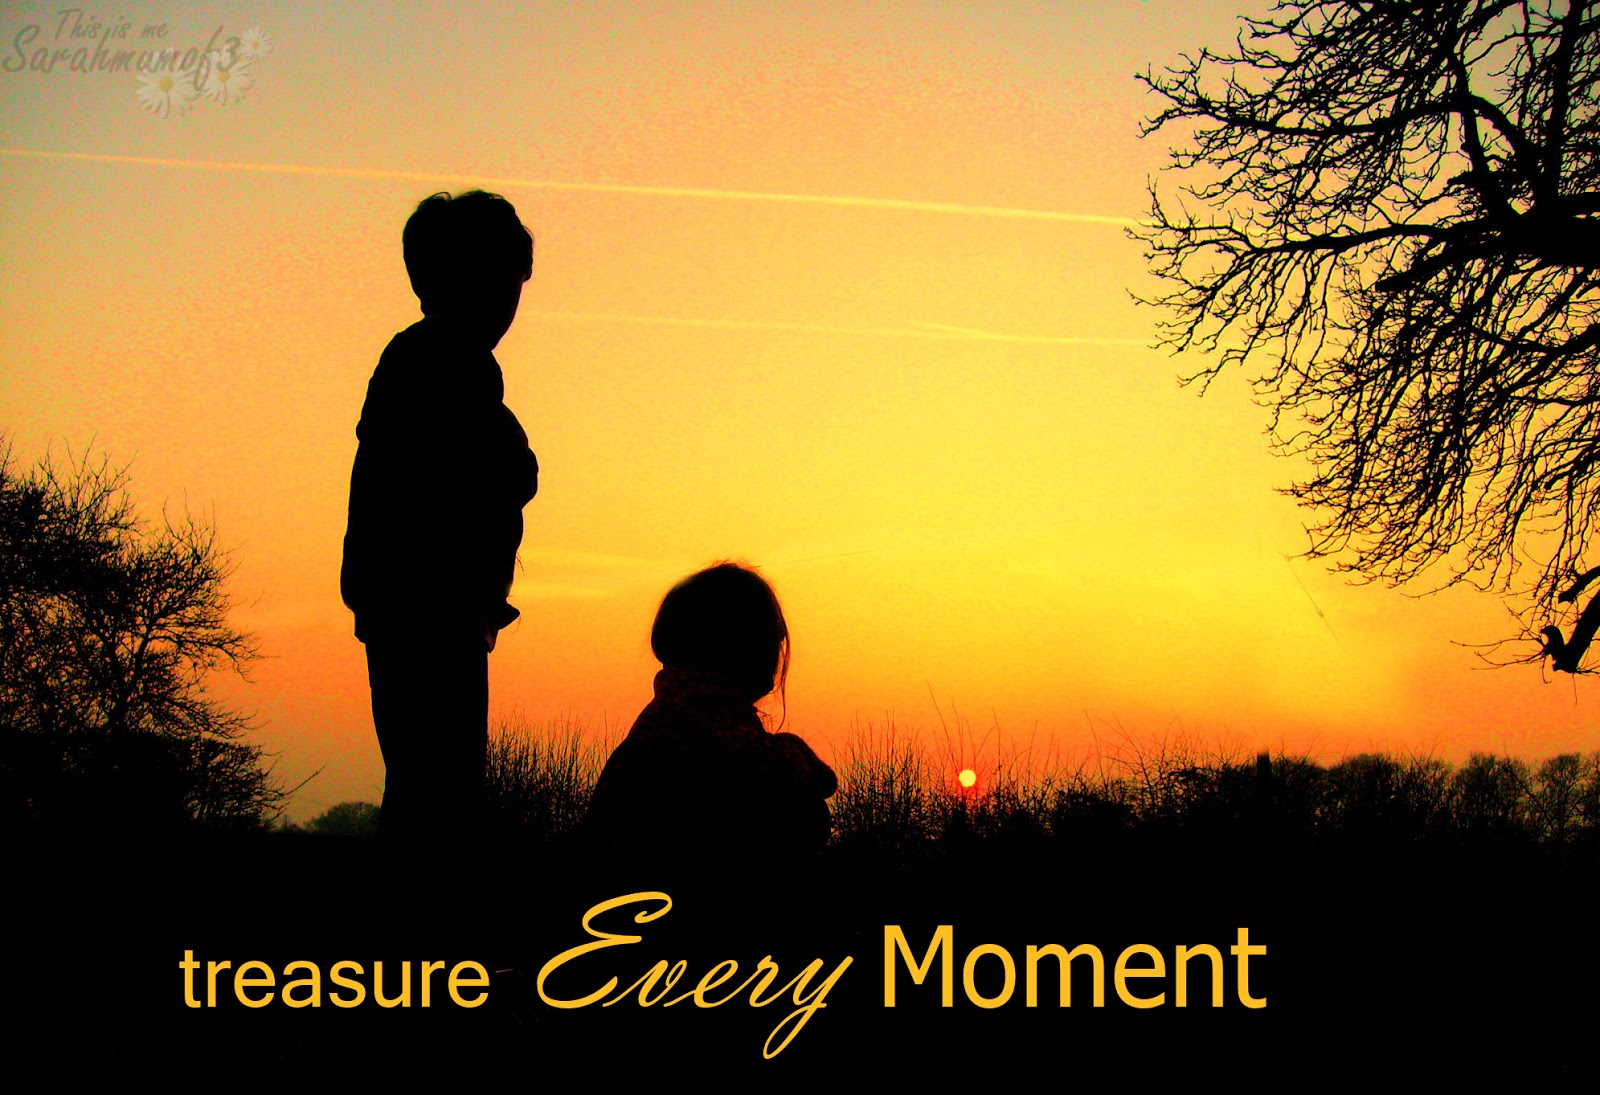 Precious Come Fly With Me Quotes: This Is Me Sarah Mum Of 3: Treasure Every Moment